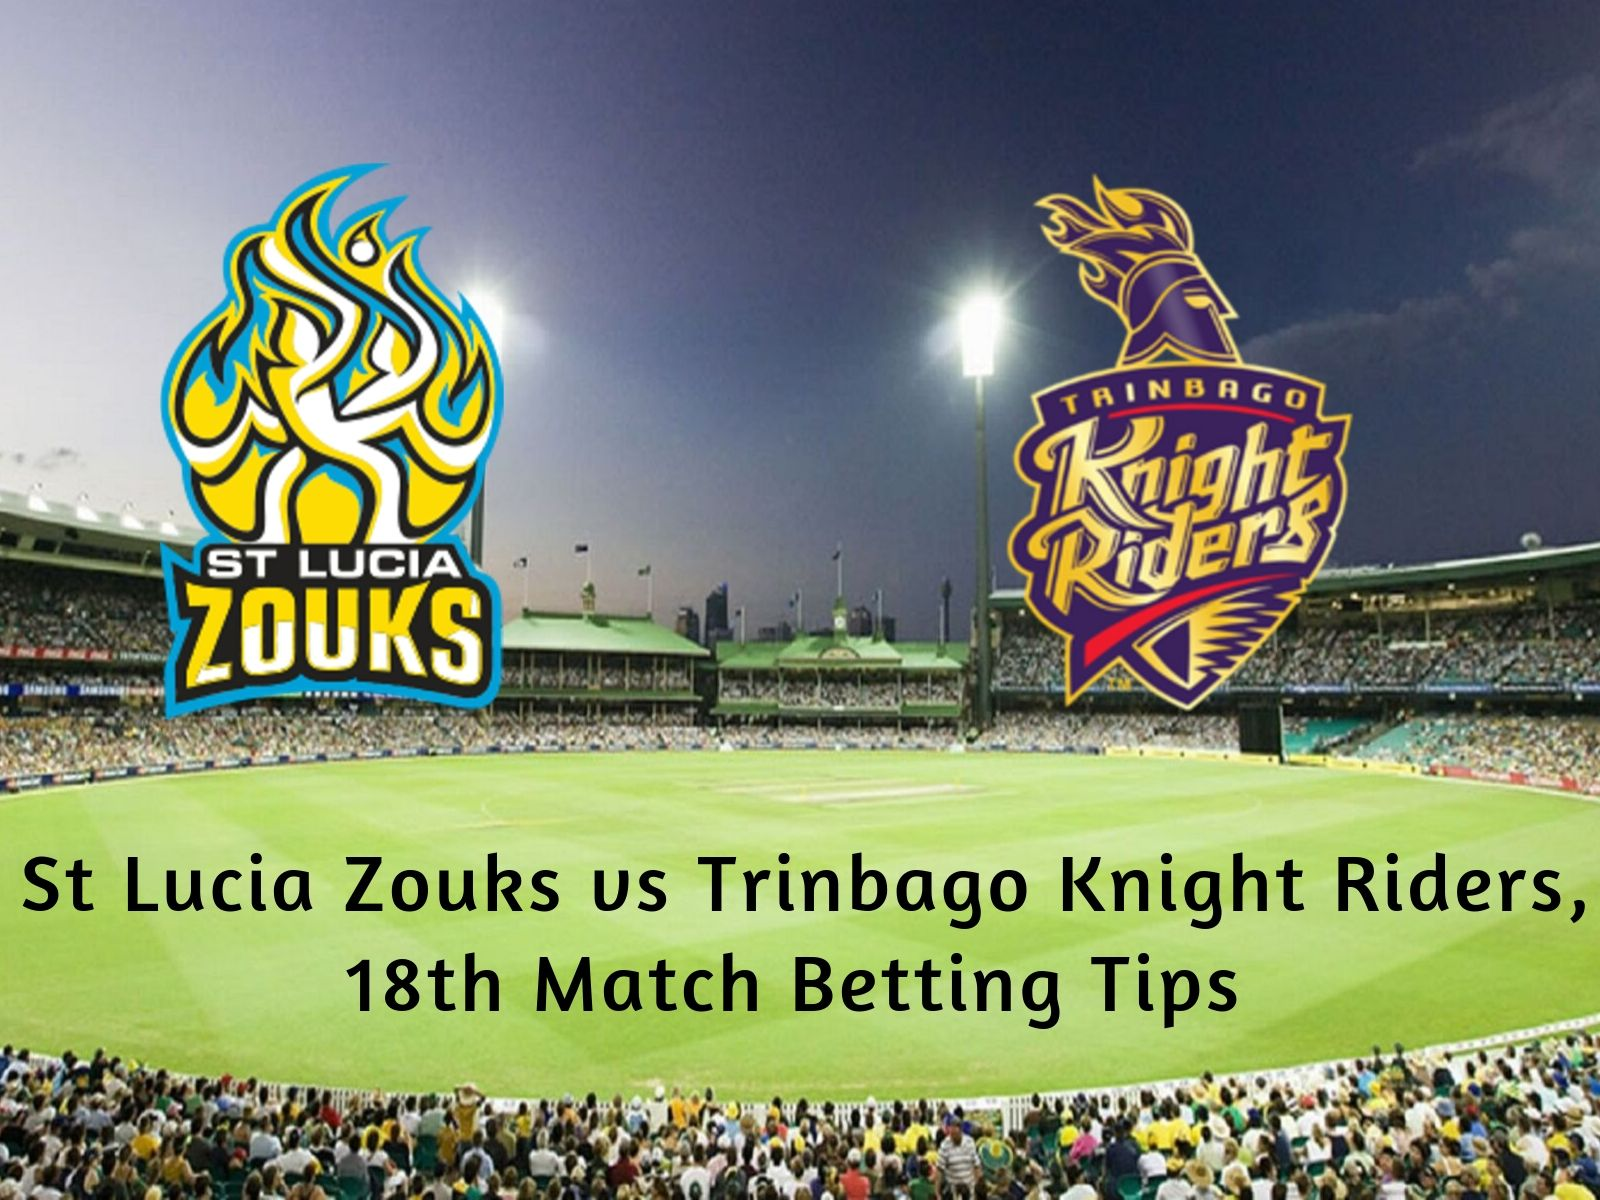 St Lucia Zouks vs Trinbago Knight Riders, 18th Match Betting Tips